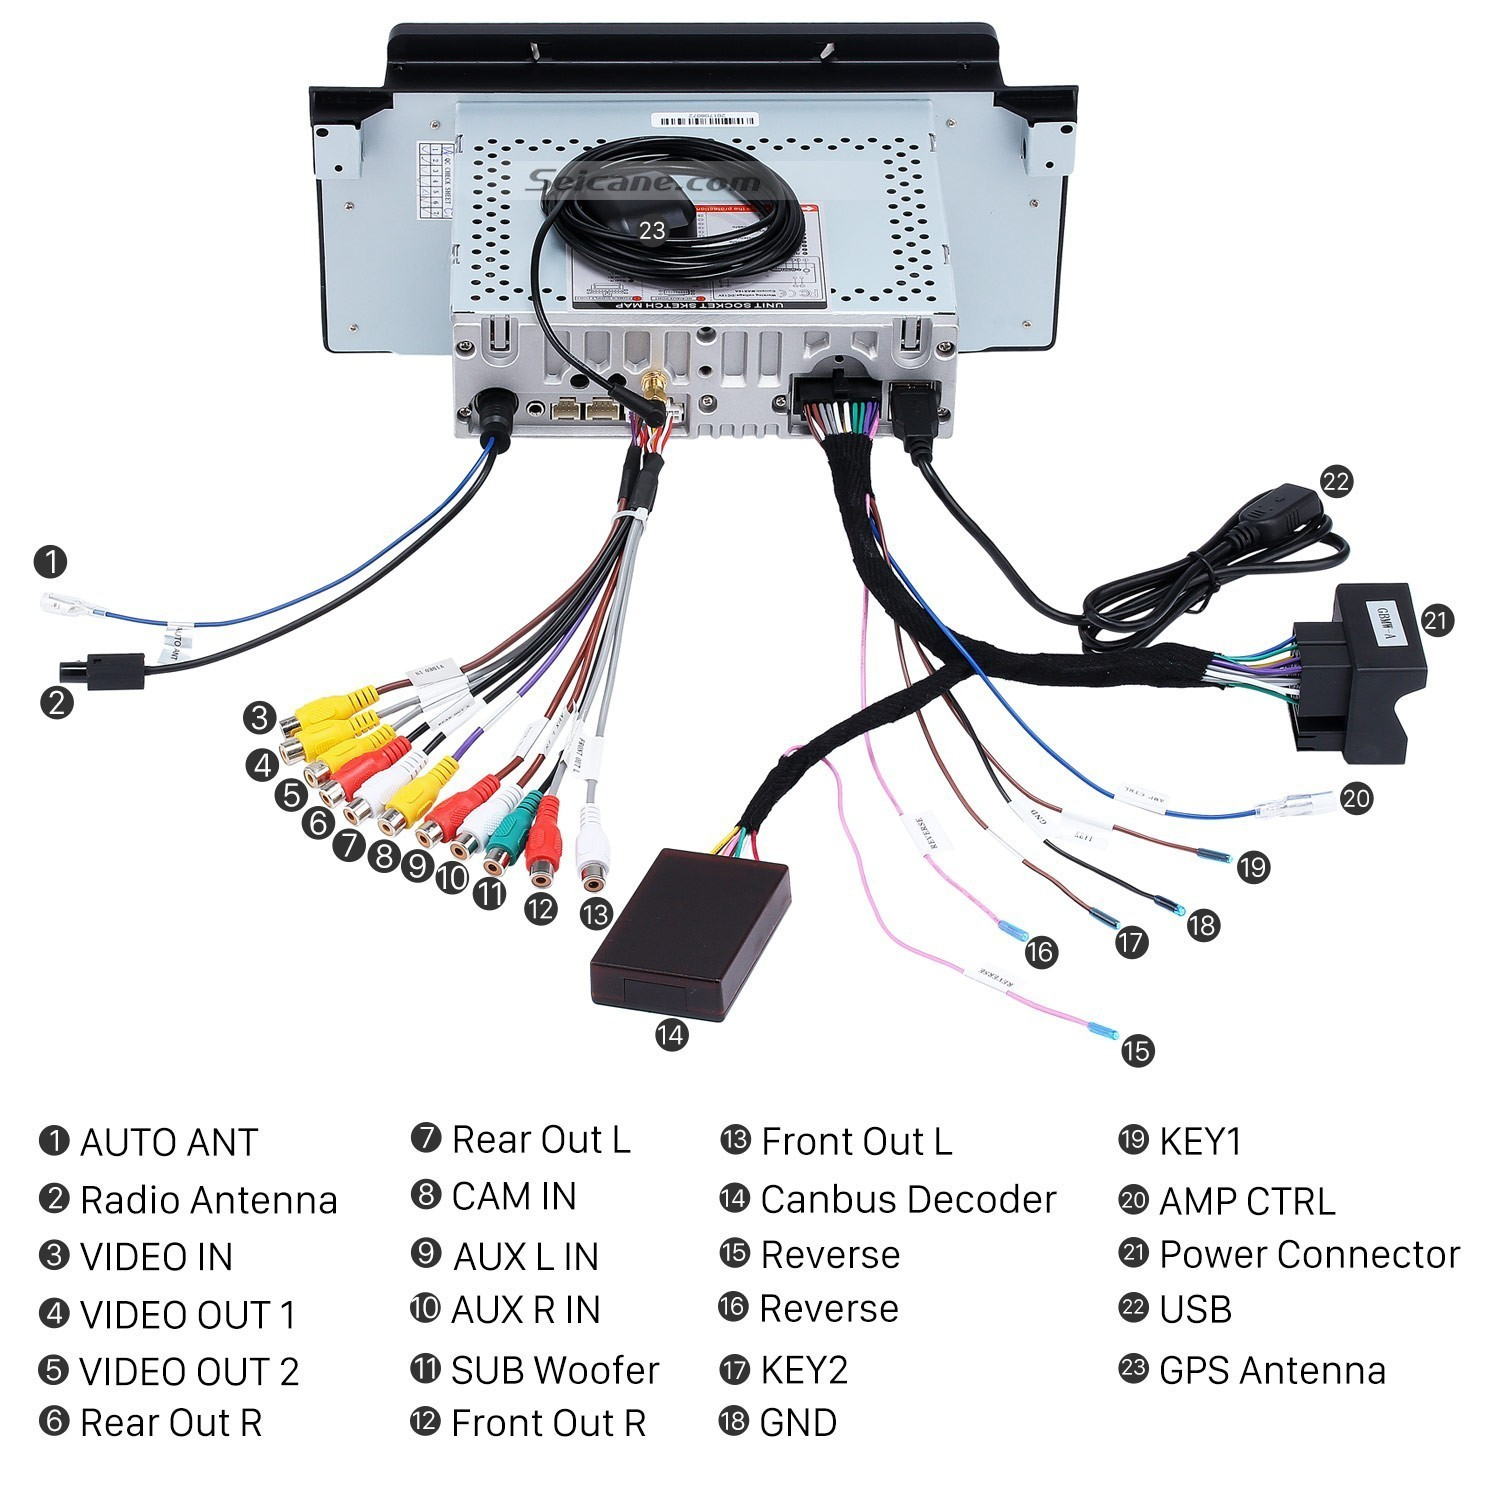 Car Brake Diagram My Wiring Harness Routingcar 9 Inch 2000 2007 Bmw X5 E53 3 0i 0d 4 4i 6is 0d1c0d94e16e81a492a4c059a6b22e6d